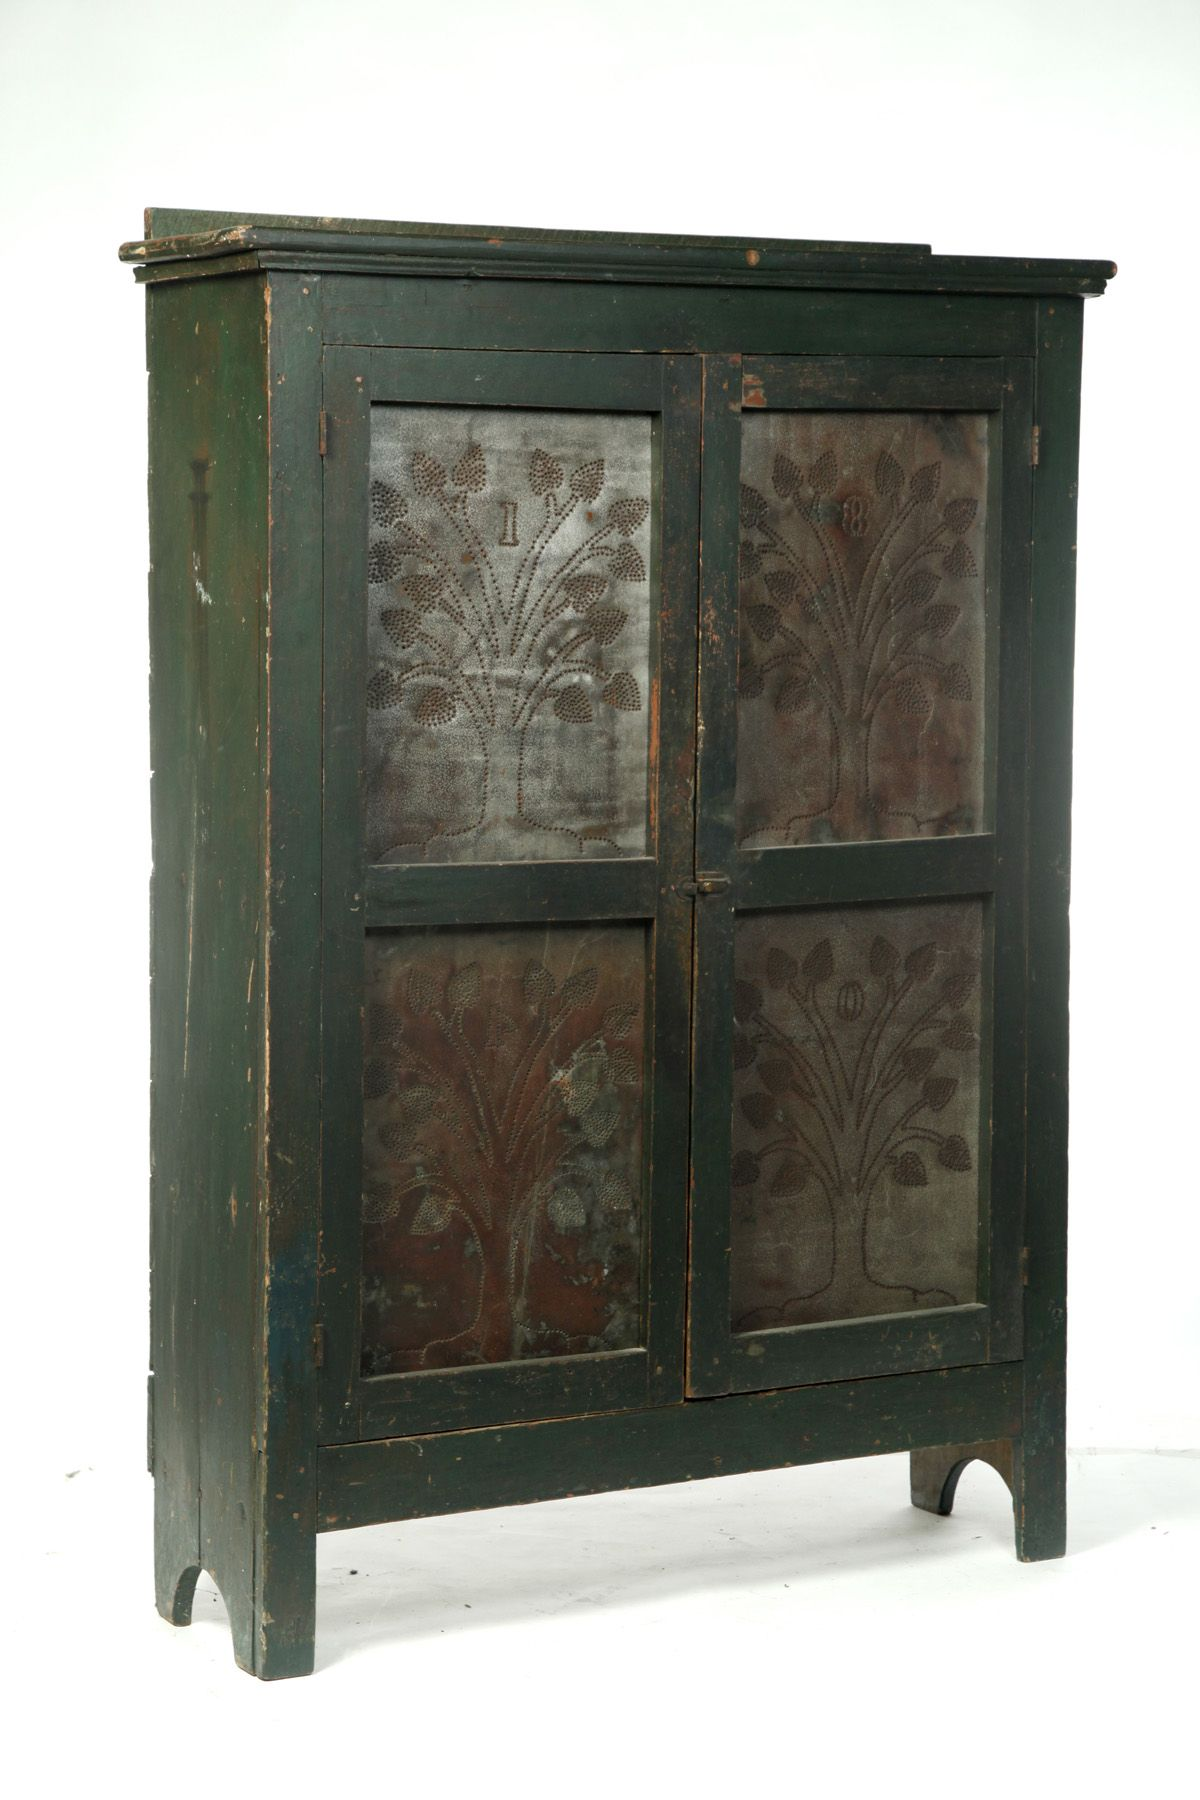 American Punched Tin Pie Safe Mid19th Century Poplar Large Size With Two Doors Replaced Panels And Old Green Paint Have Tree Designs